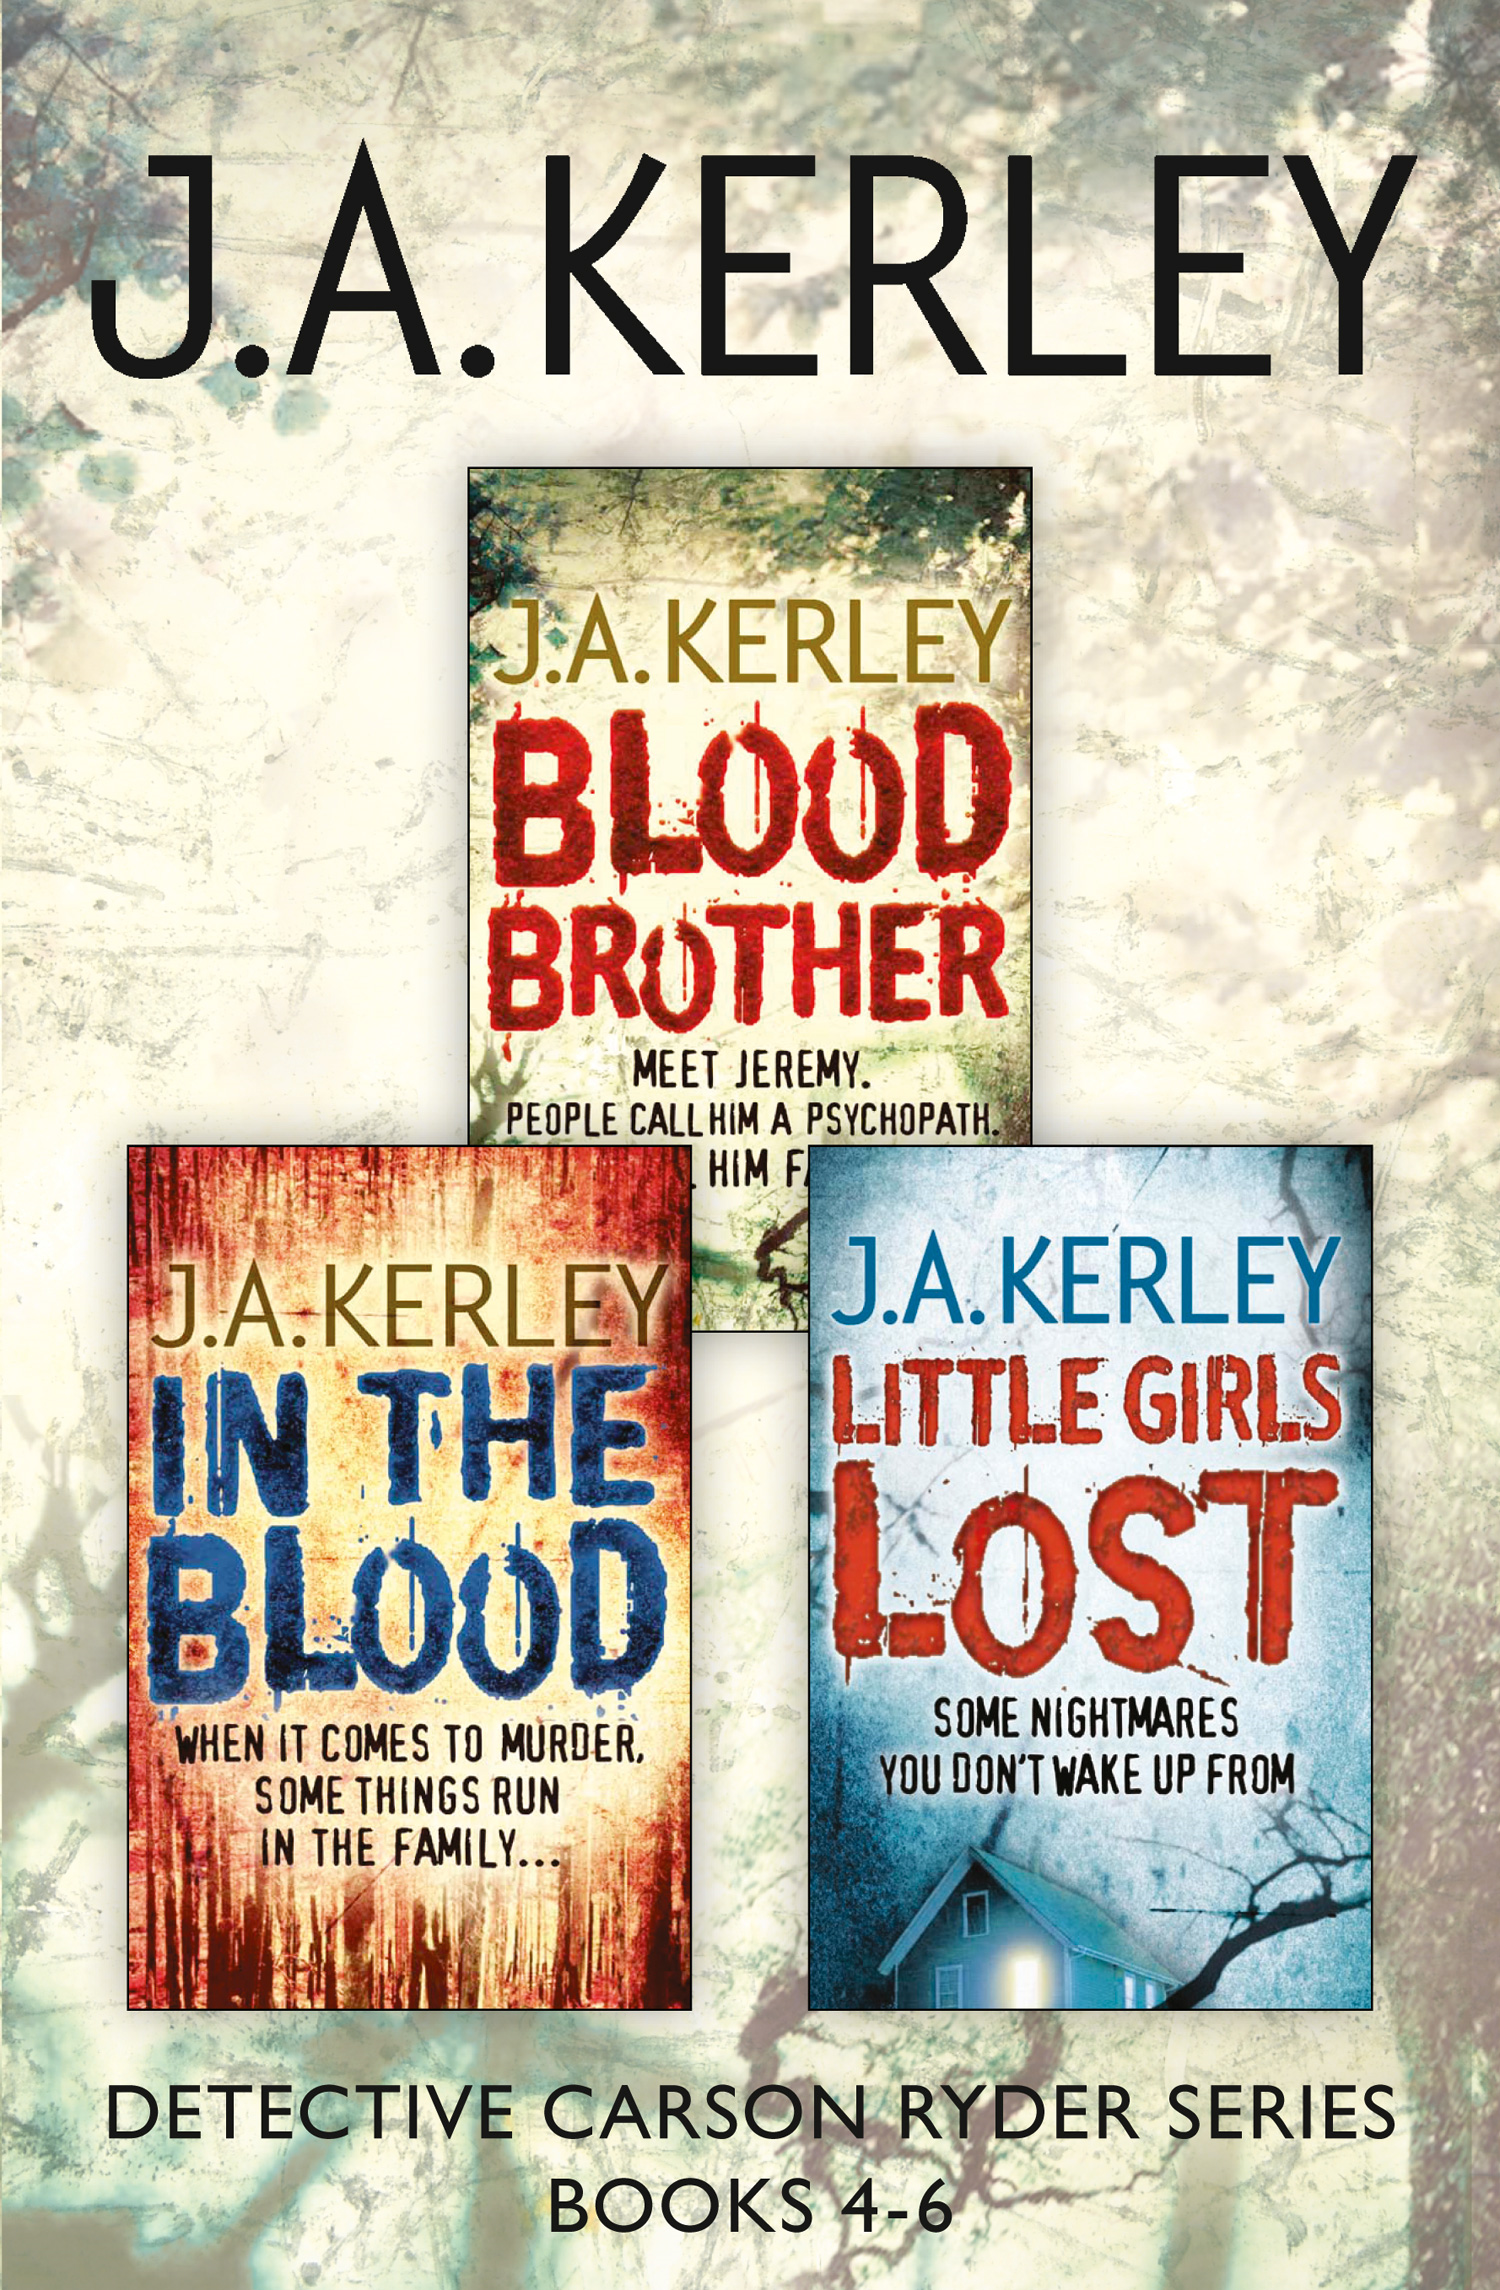 Detective Carson Ryder Thriller Series Books 4-6: Blood Brother, In the Blood, Little Girls Lost